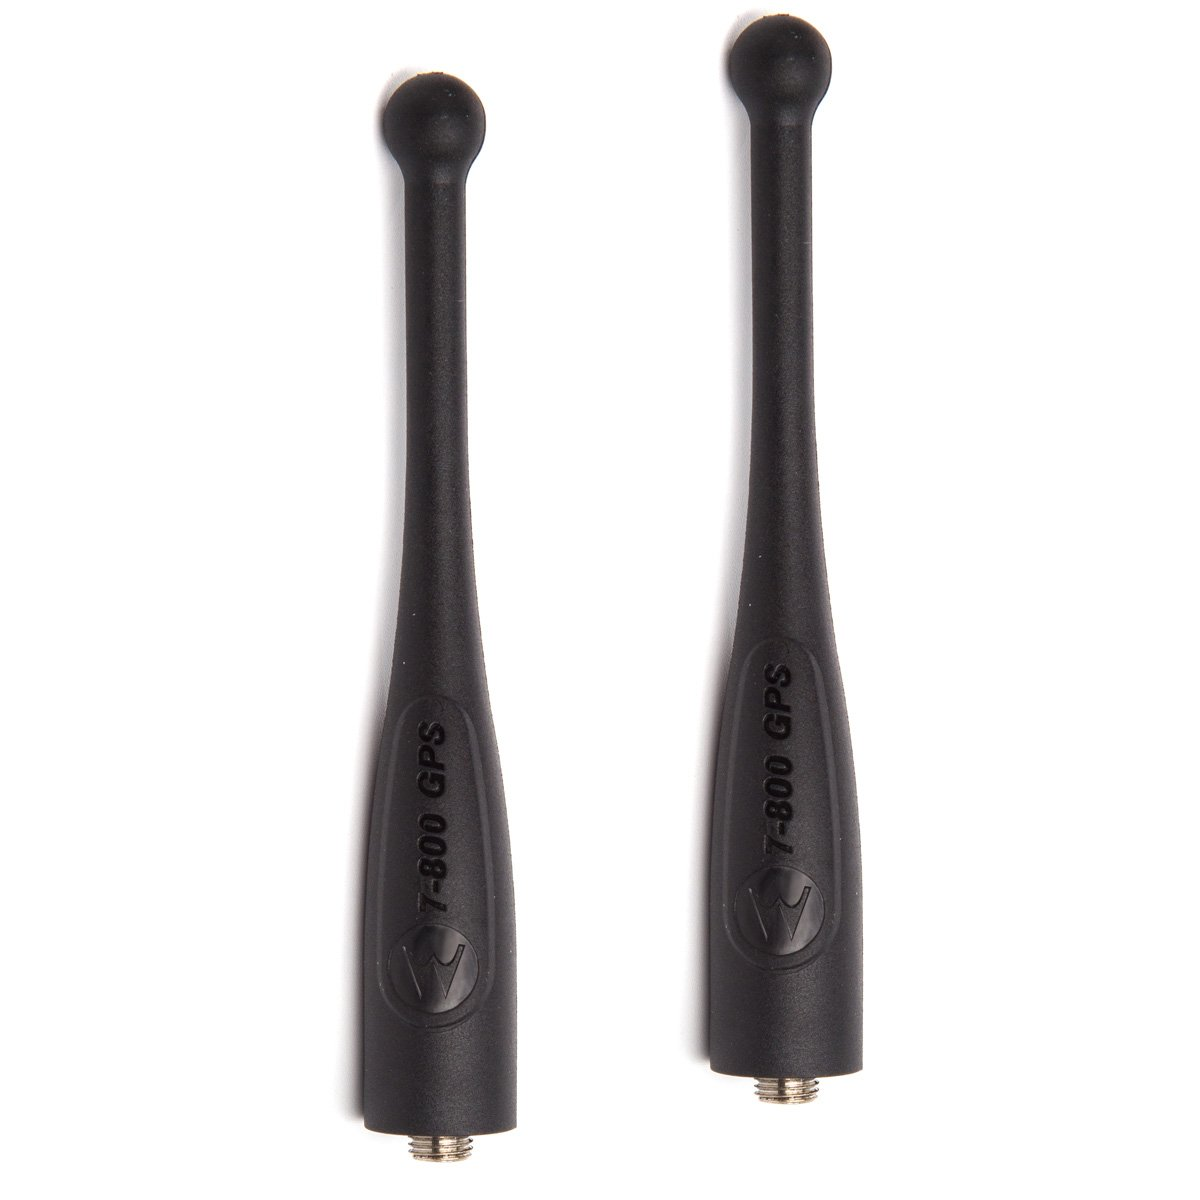 LUITON NAR6595 Antenna Compatible with Motorola APX 764-870 MHz Single-Band GPS Stubby Antenna (2Pack)